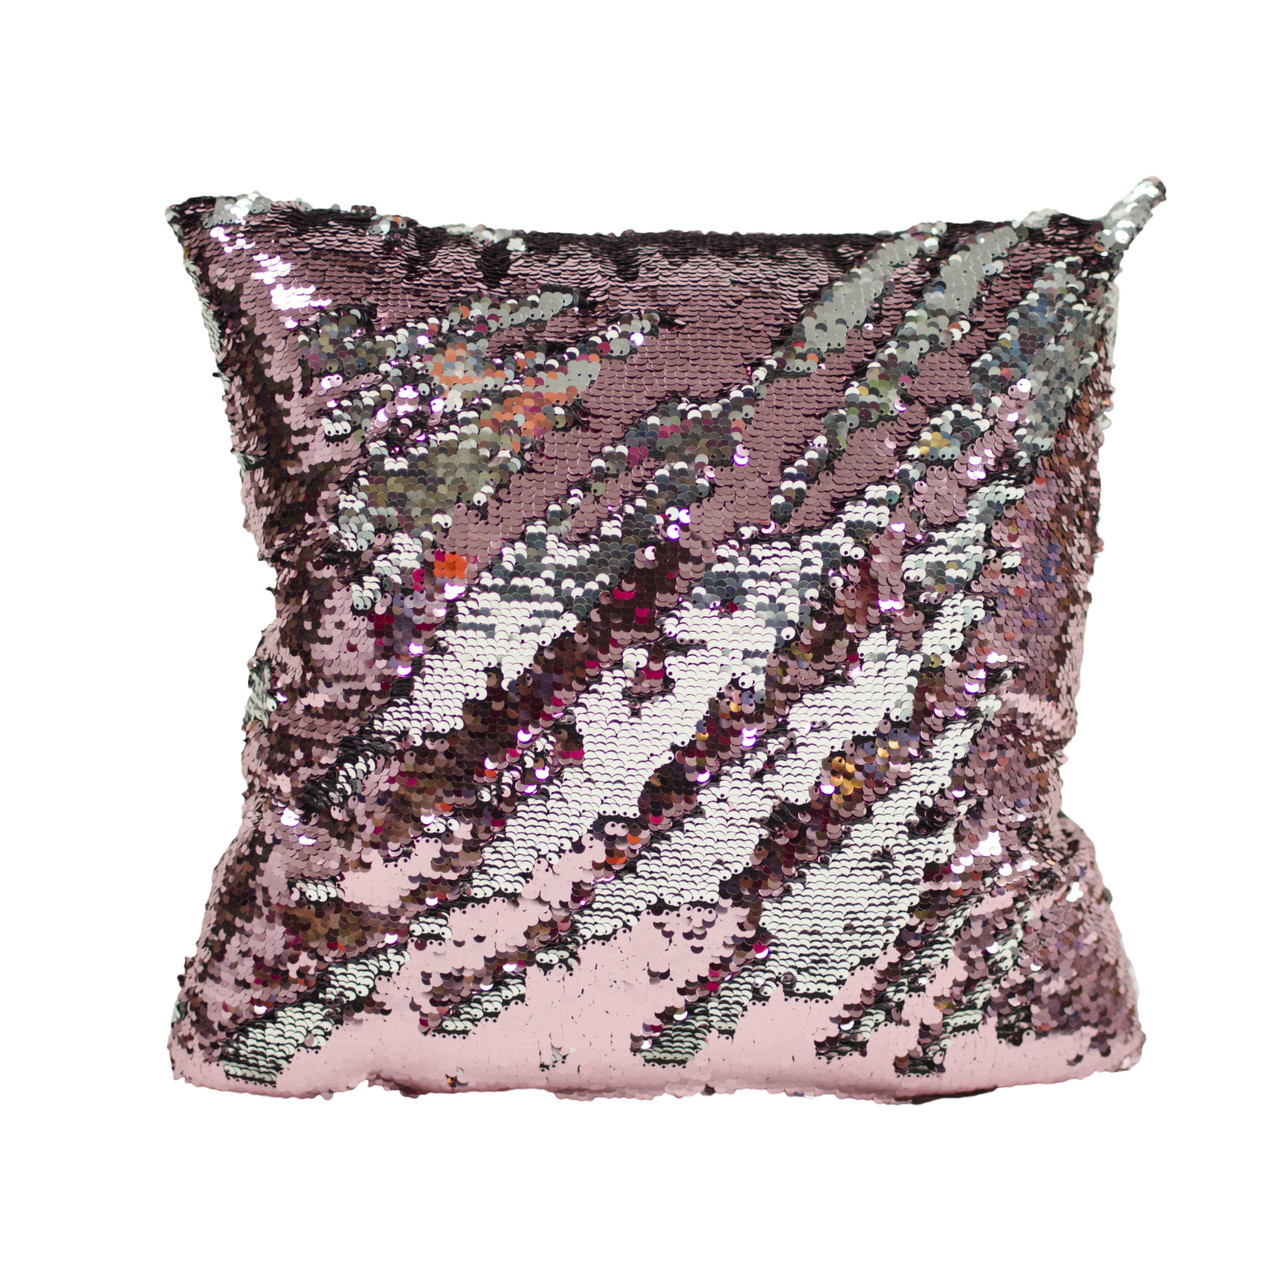 decorative pillow amore covers purple pillows blanket best gallery throw cushion amazoncom in handmade for sofa beaute place